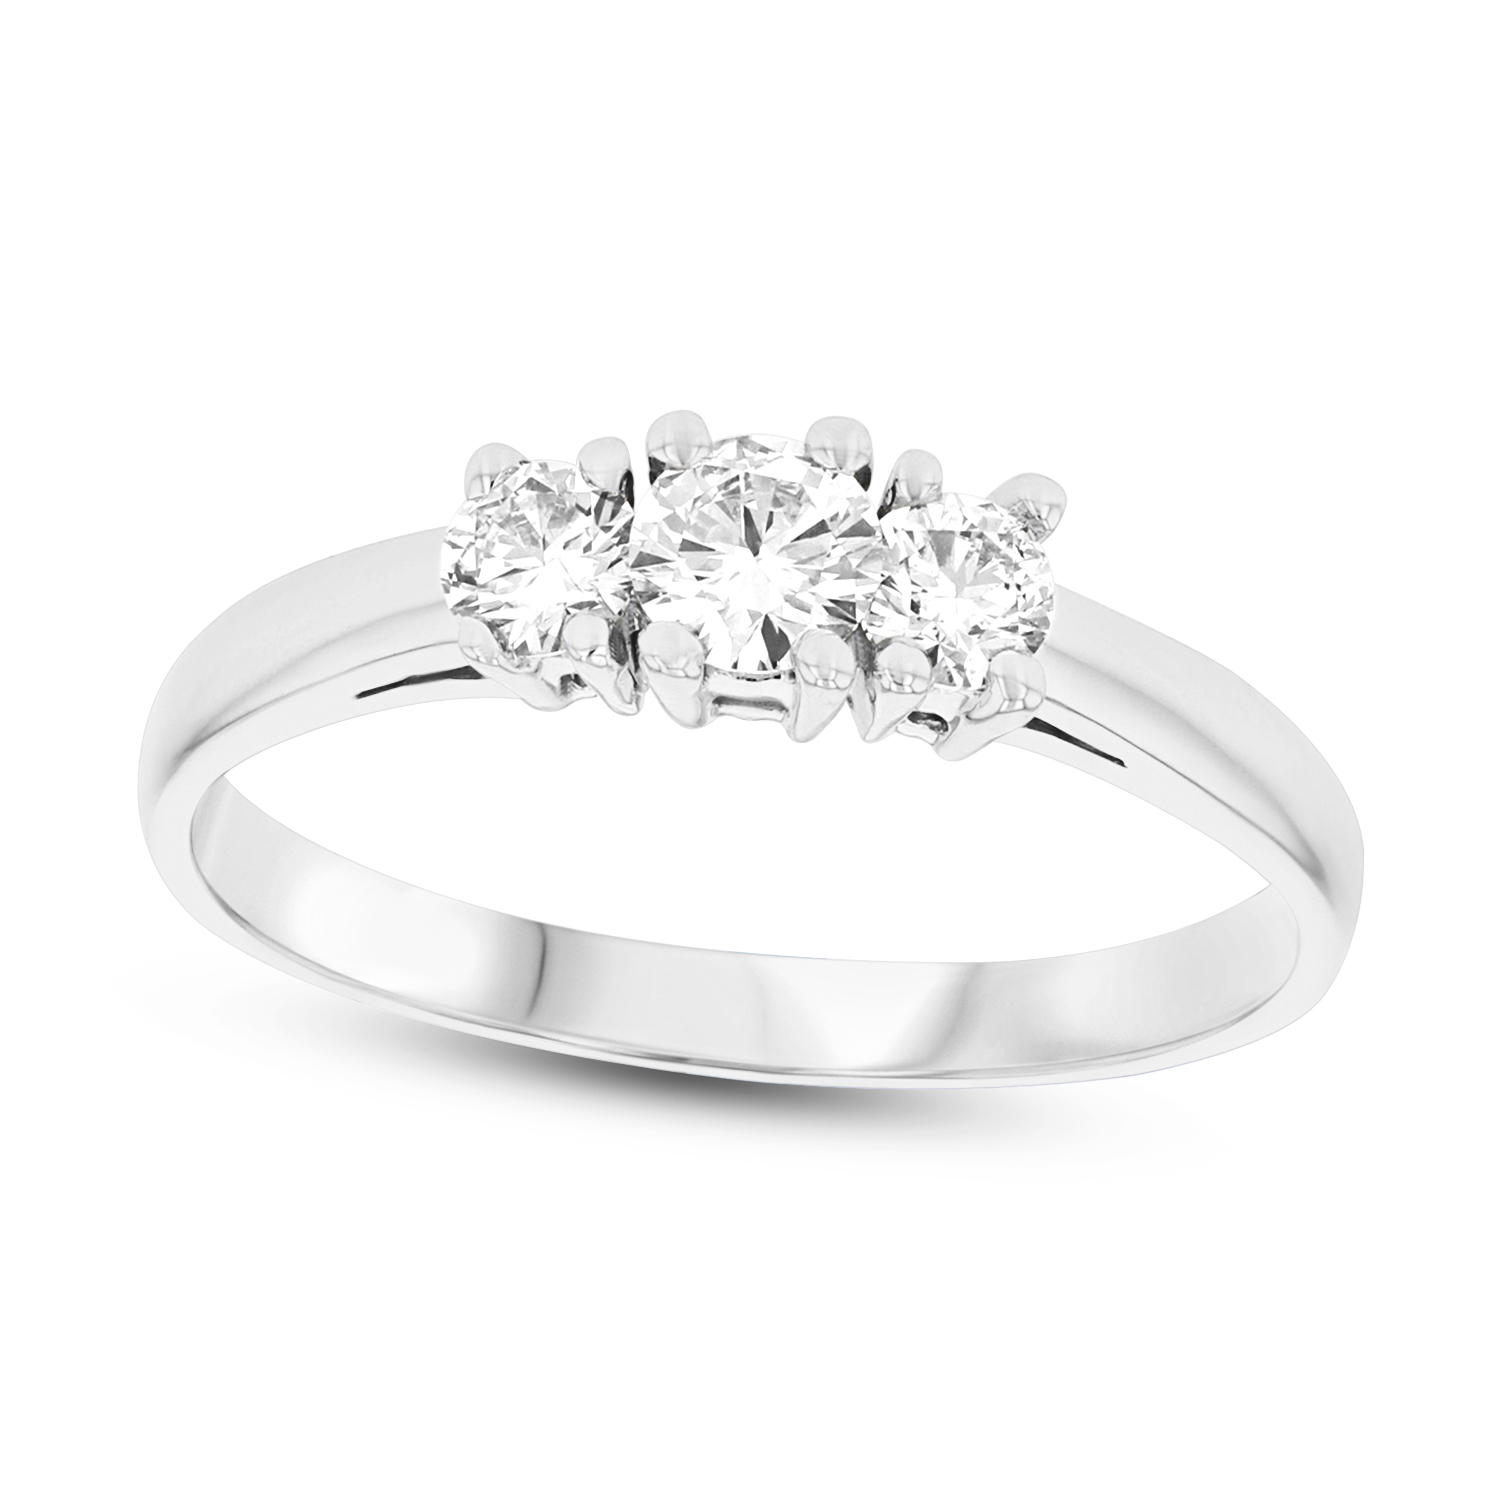 future past and brilliant eve wedding engagement s dazzling ring rings cz present cut